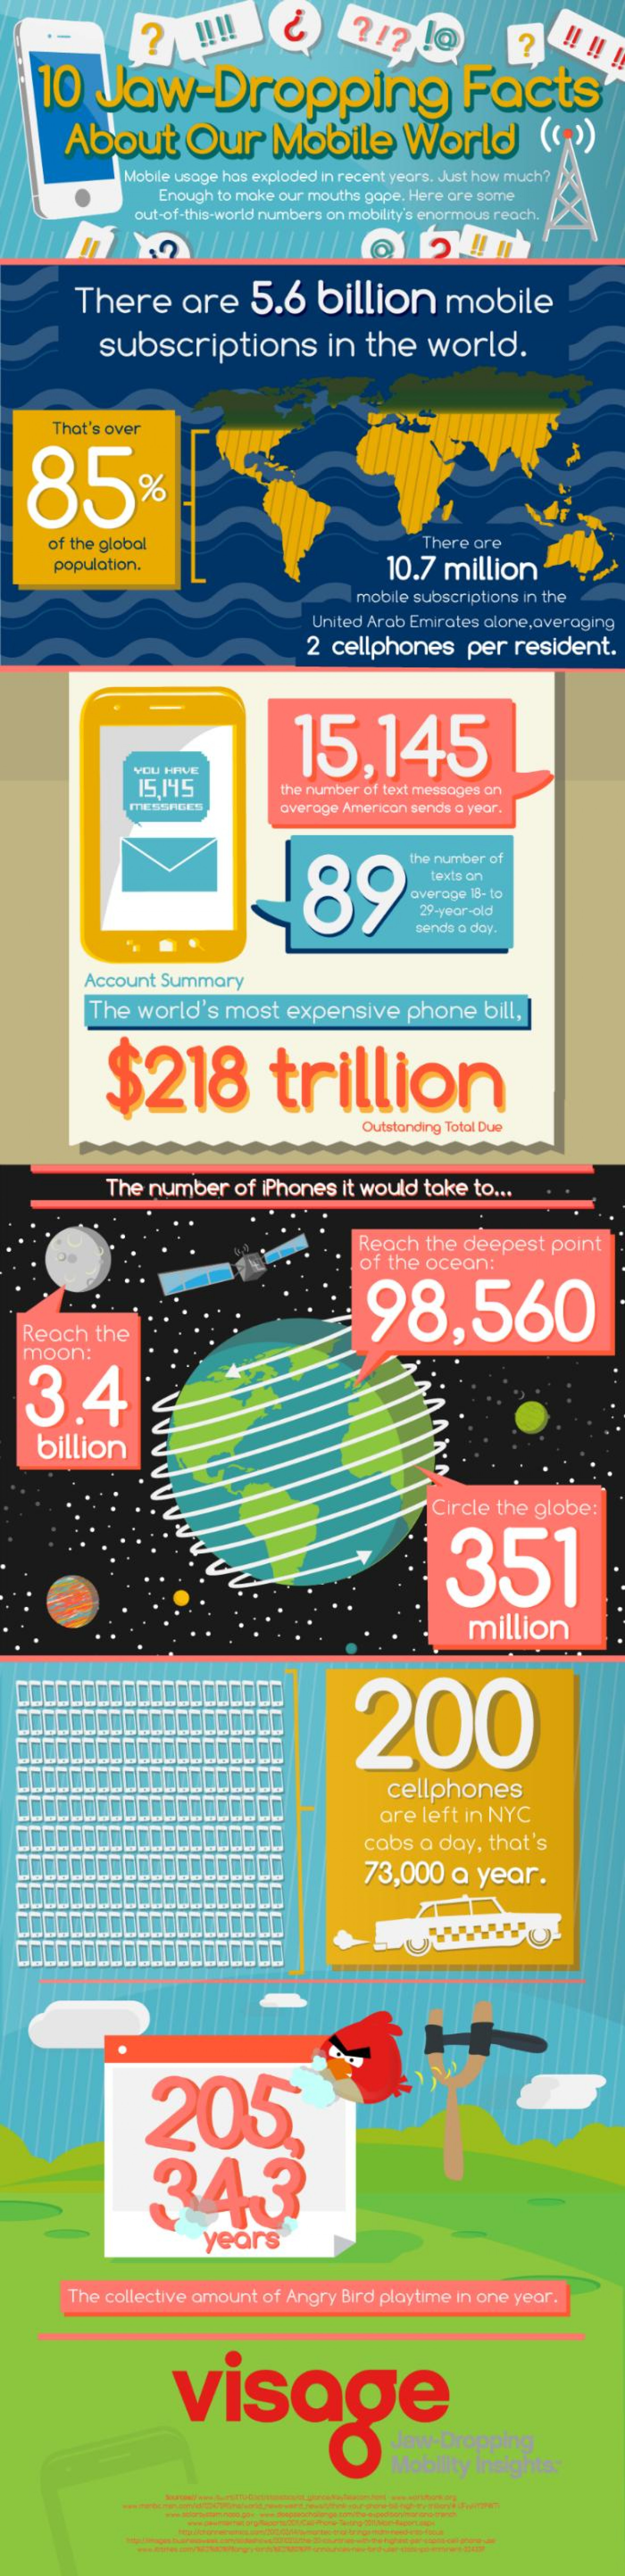 10 Jaw-Dropping Facts About Our Mobile World Infographic